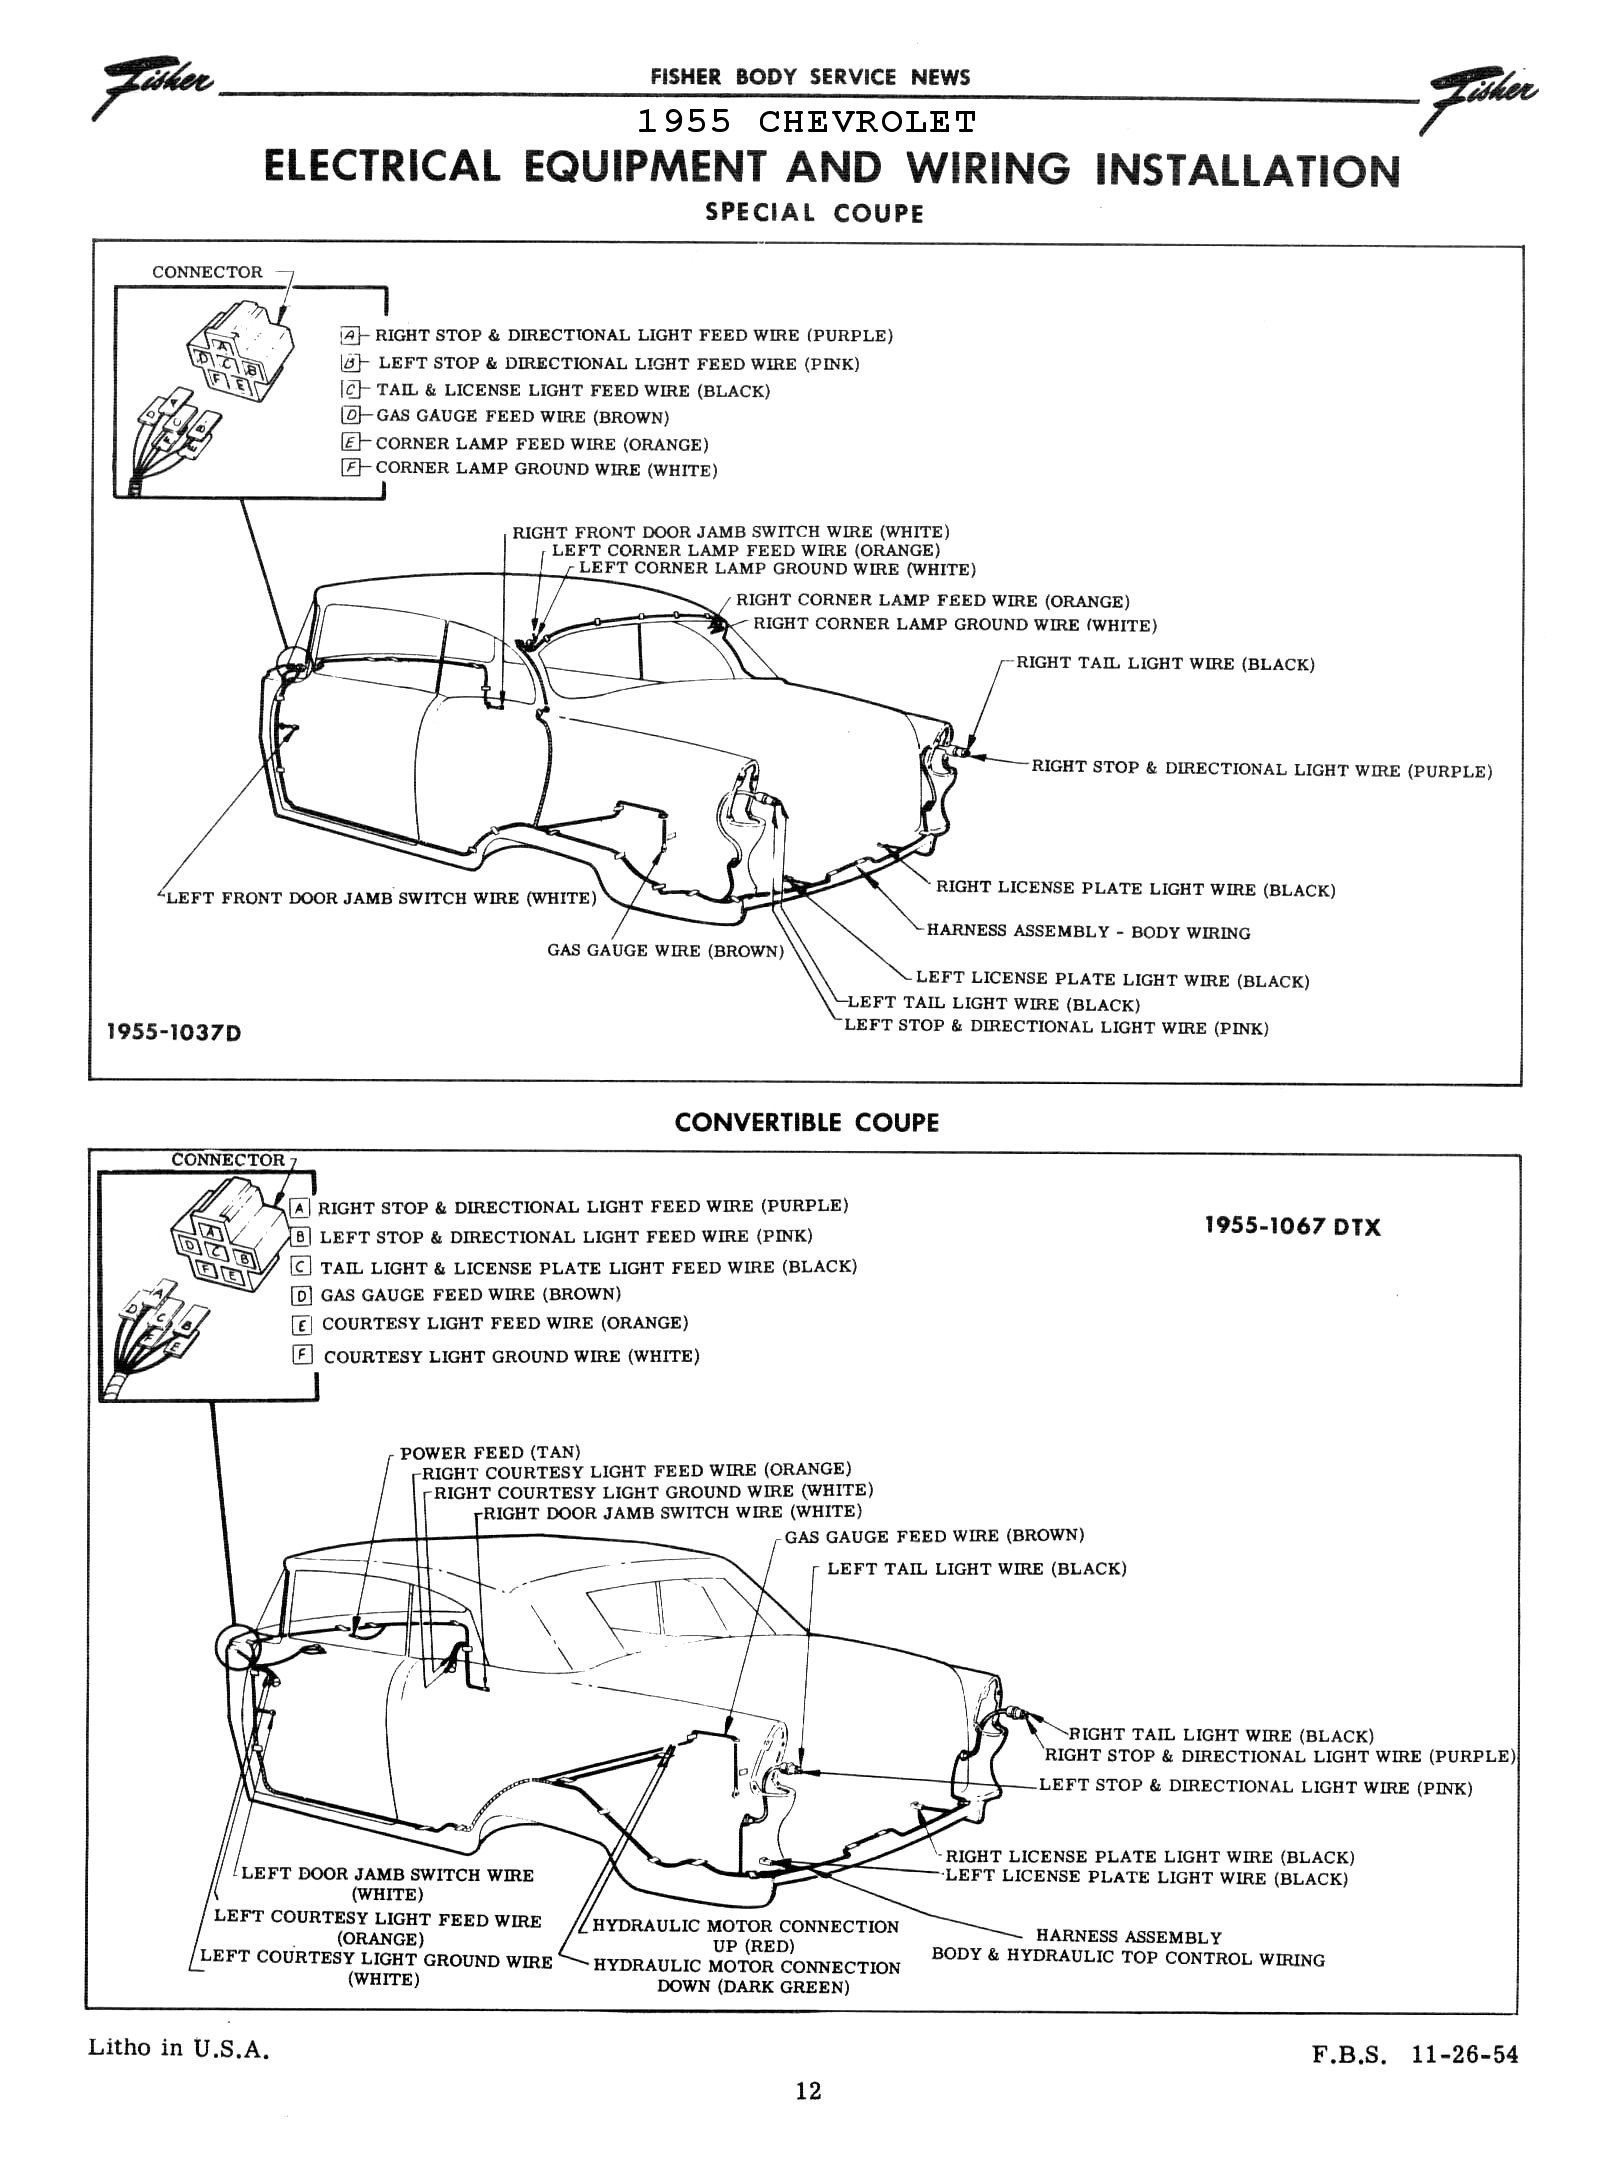 55fsn140612 chevy wiring diagrams 1956 chevy ignition switch diagram at soozxer.org